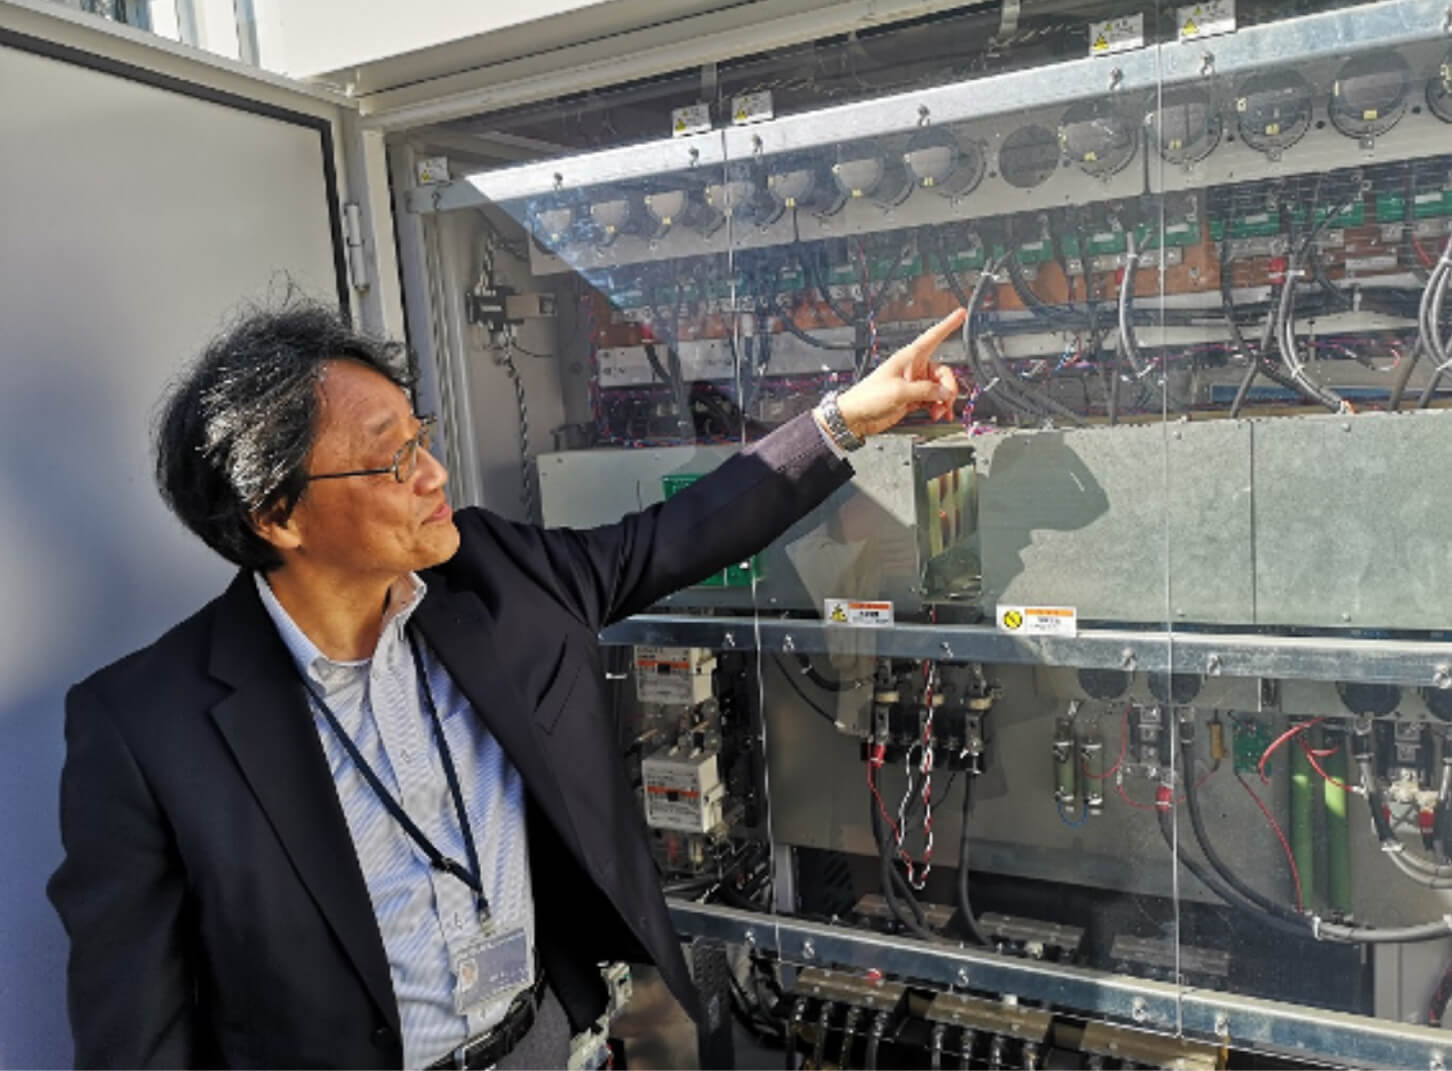 Mr. Okano of Takenaka Corp. Explains the Proprietary Power Supply System